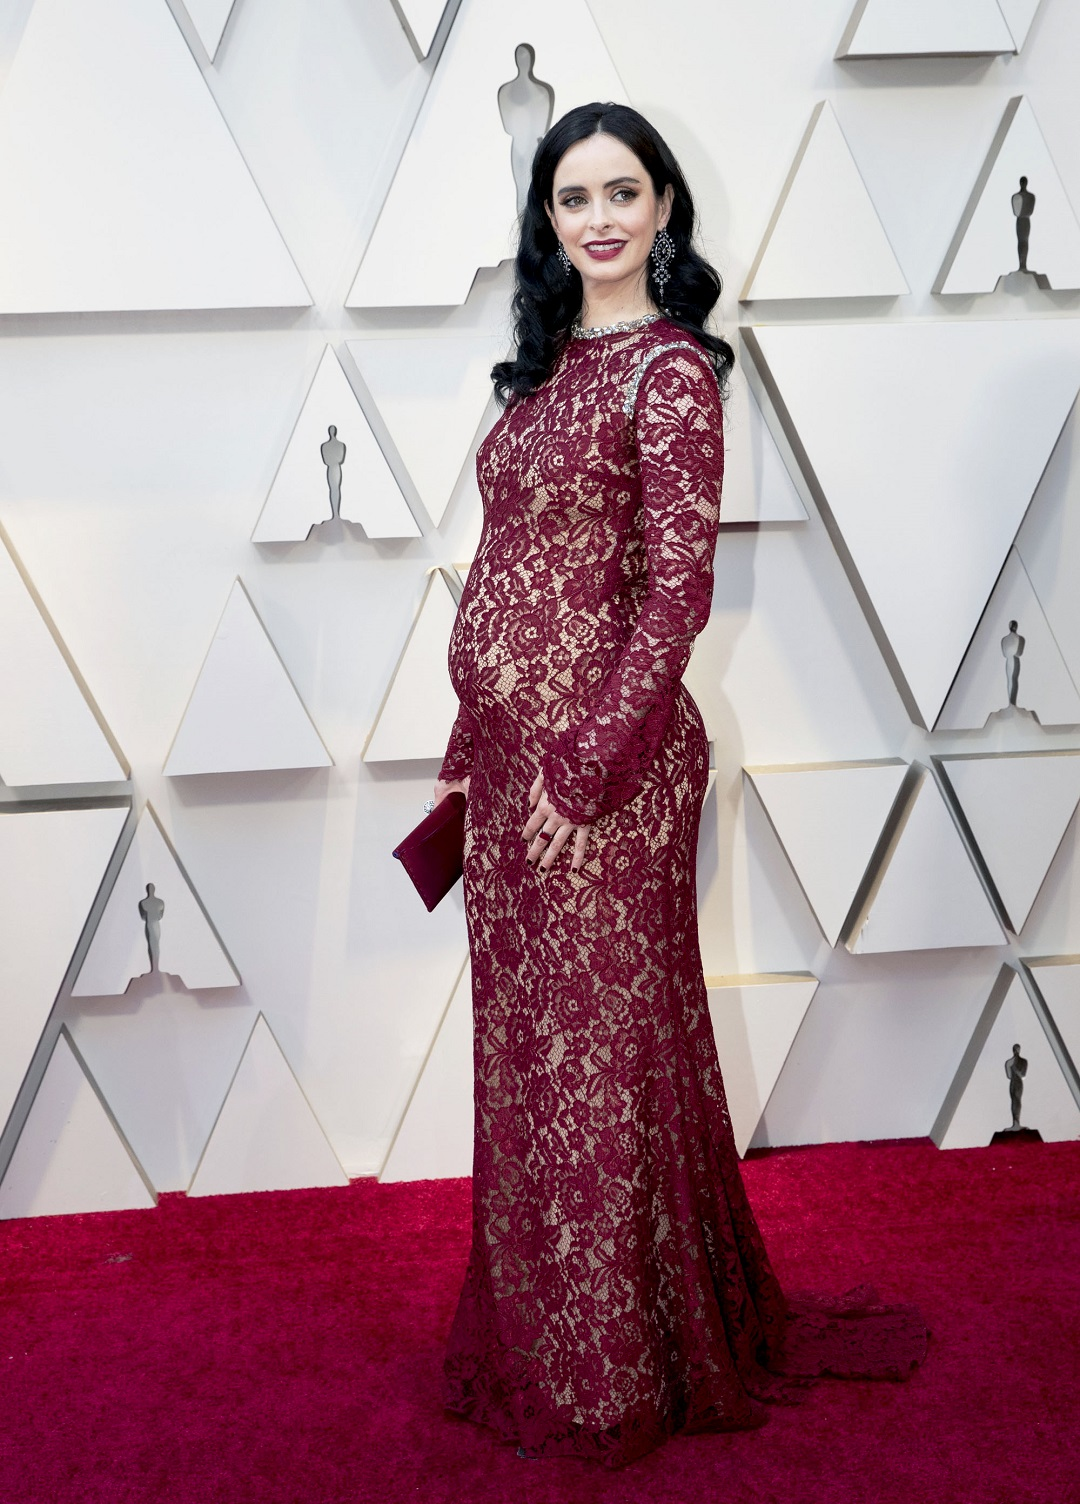 Krysten Ritter Is Going to Be a Mom! Actress Debuts Baby Bump on the 2019 Oscars Red Carpet